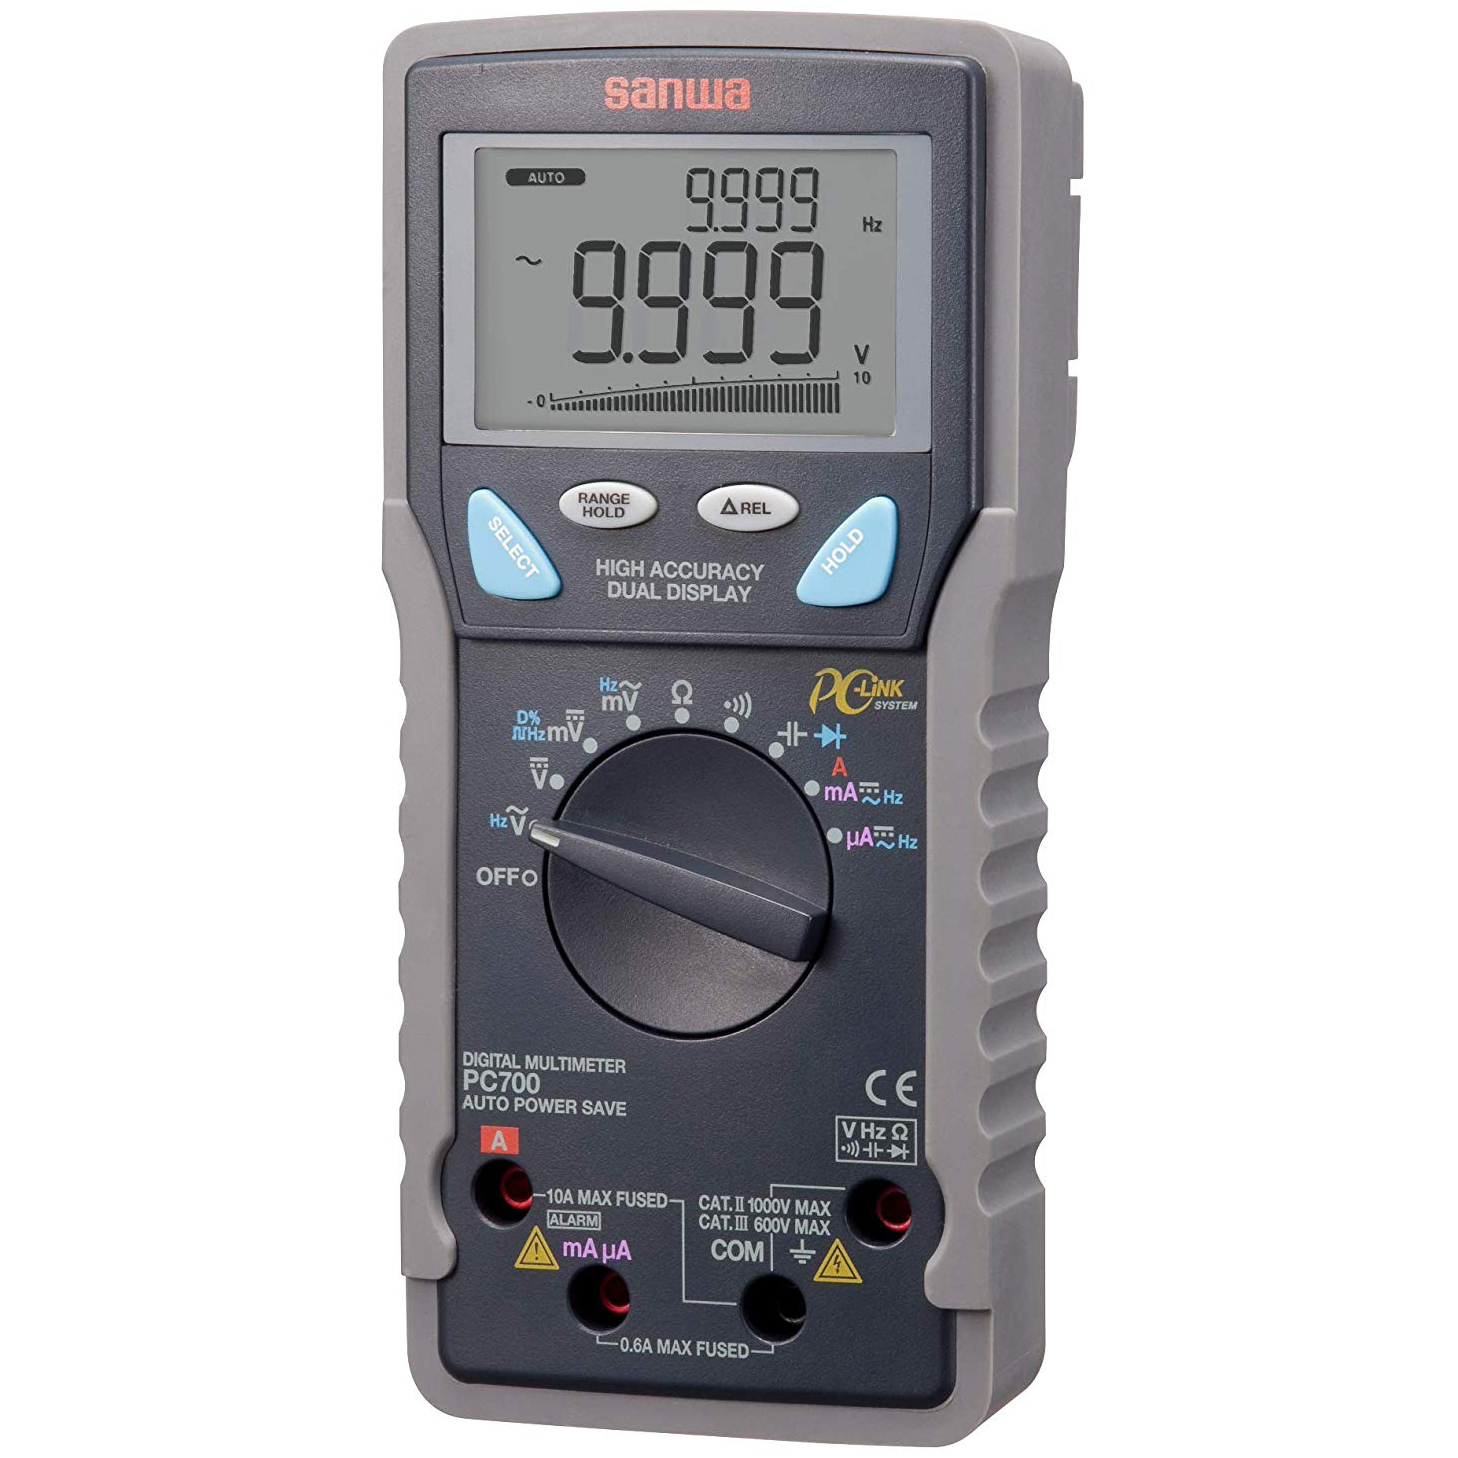 FMUSER SANWA PC700 Advanced Intelligent Digital Multimeter Full Overload Protection for PC Communication